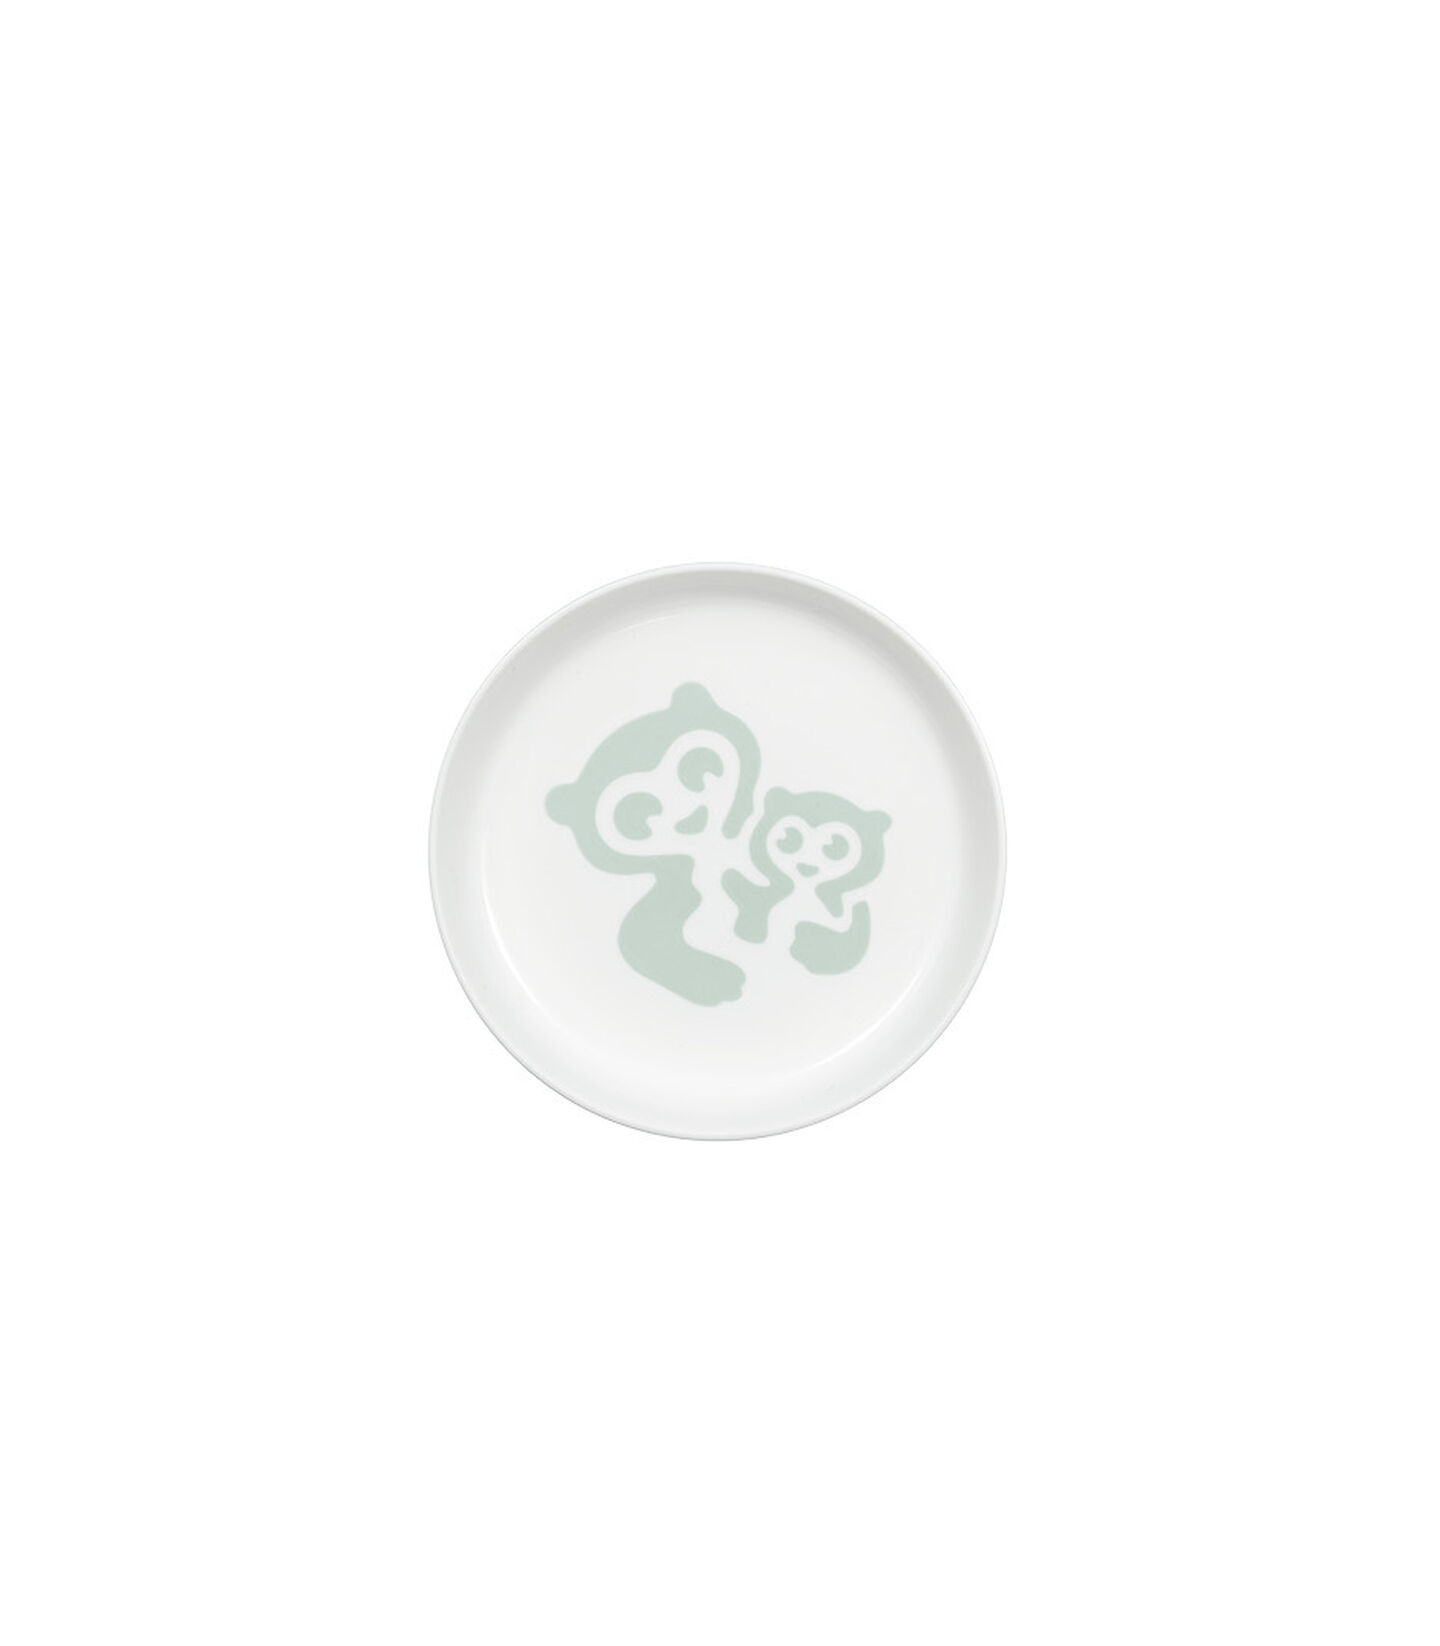 Stokke™ Munch Plate. Tableware.